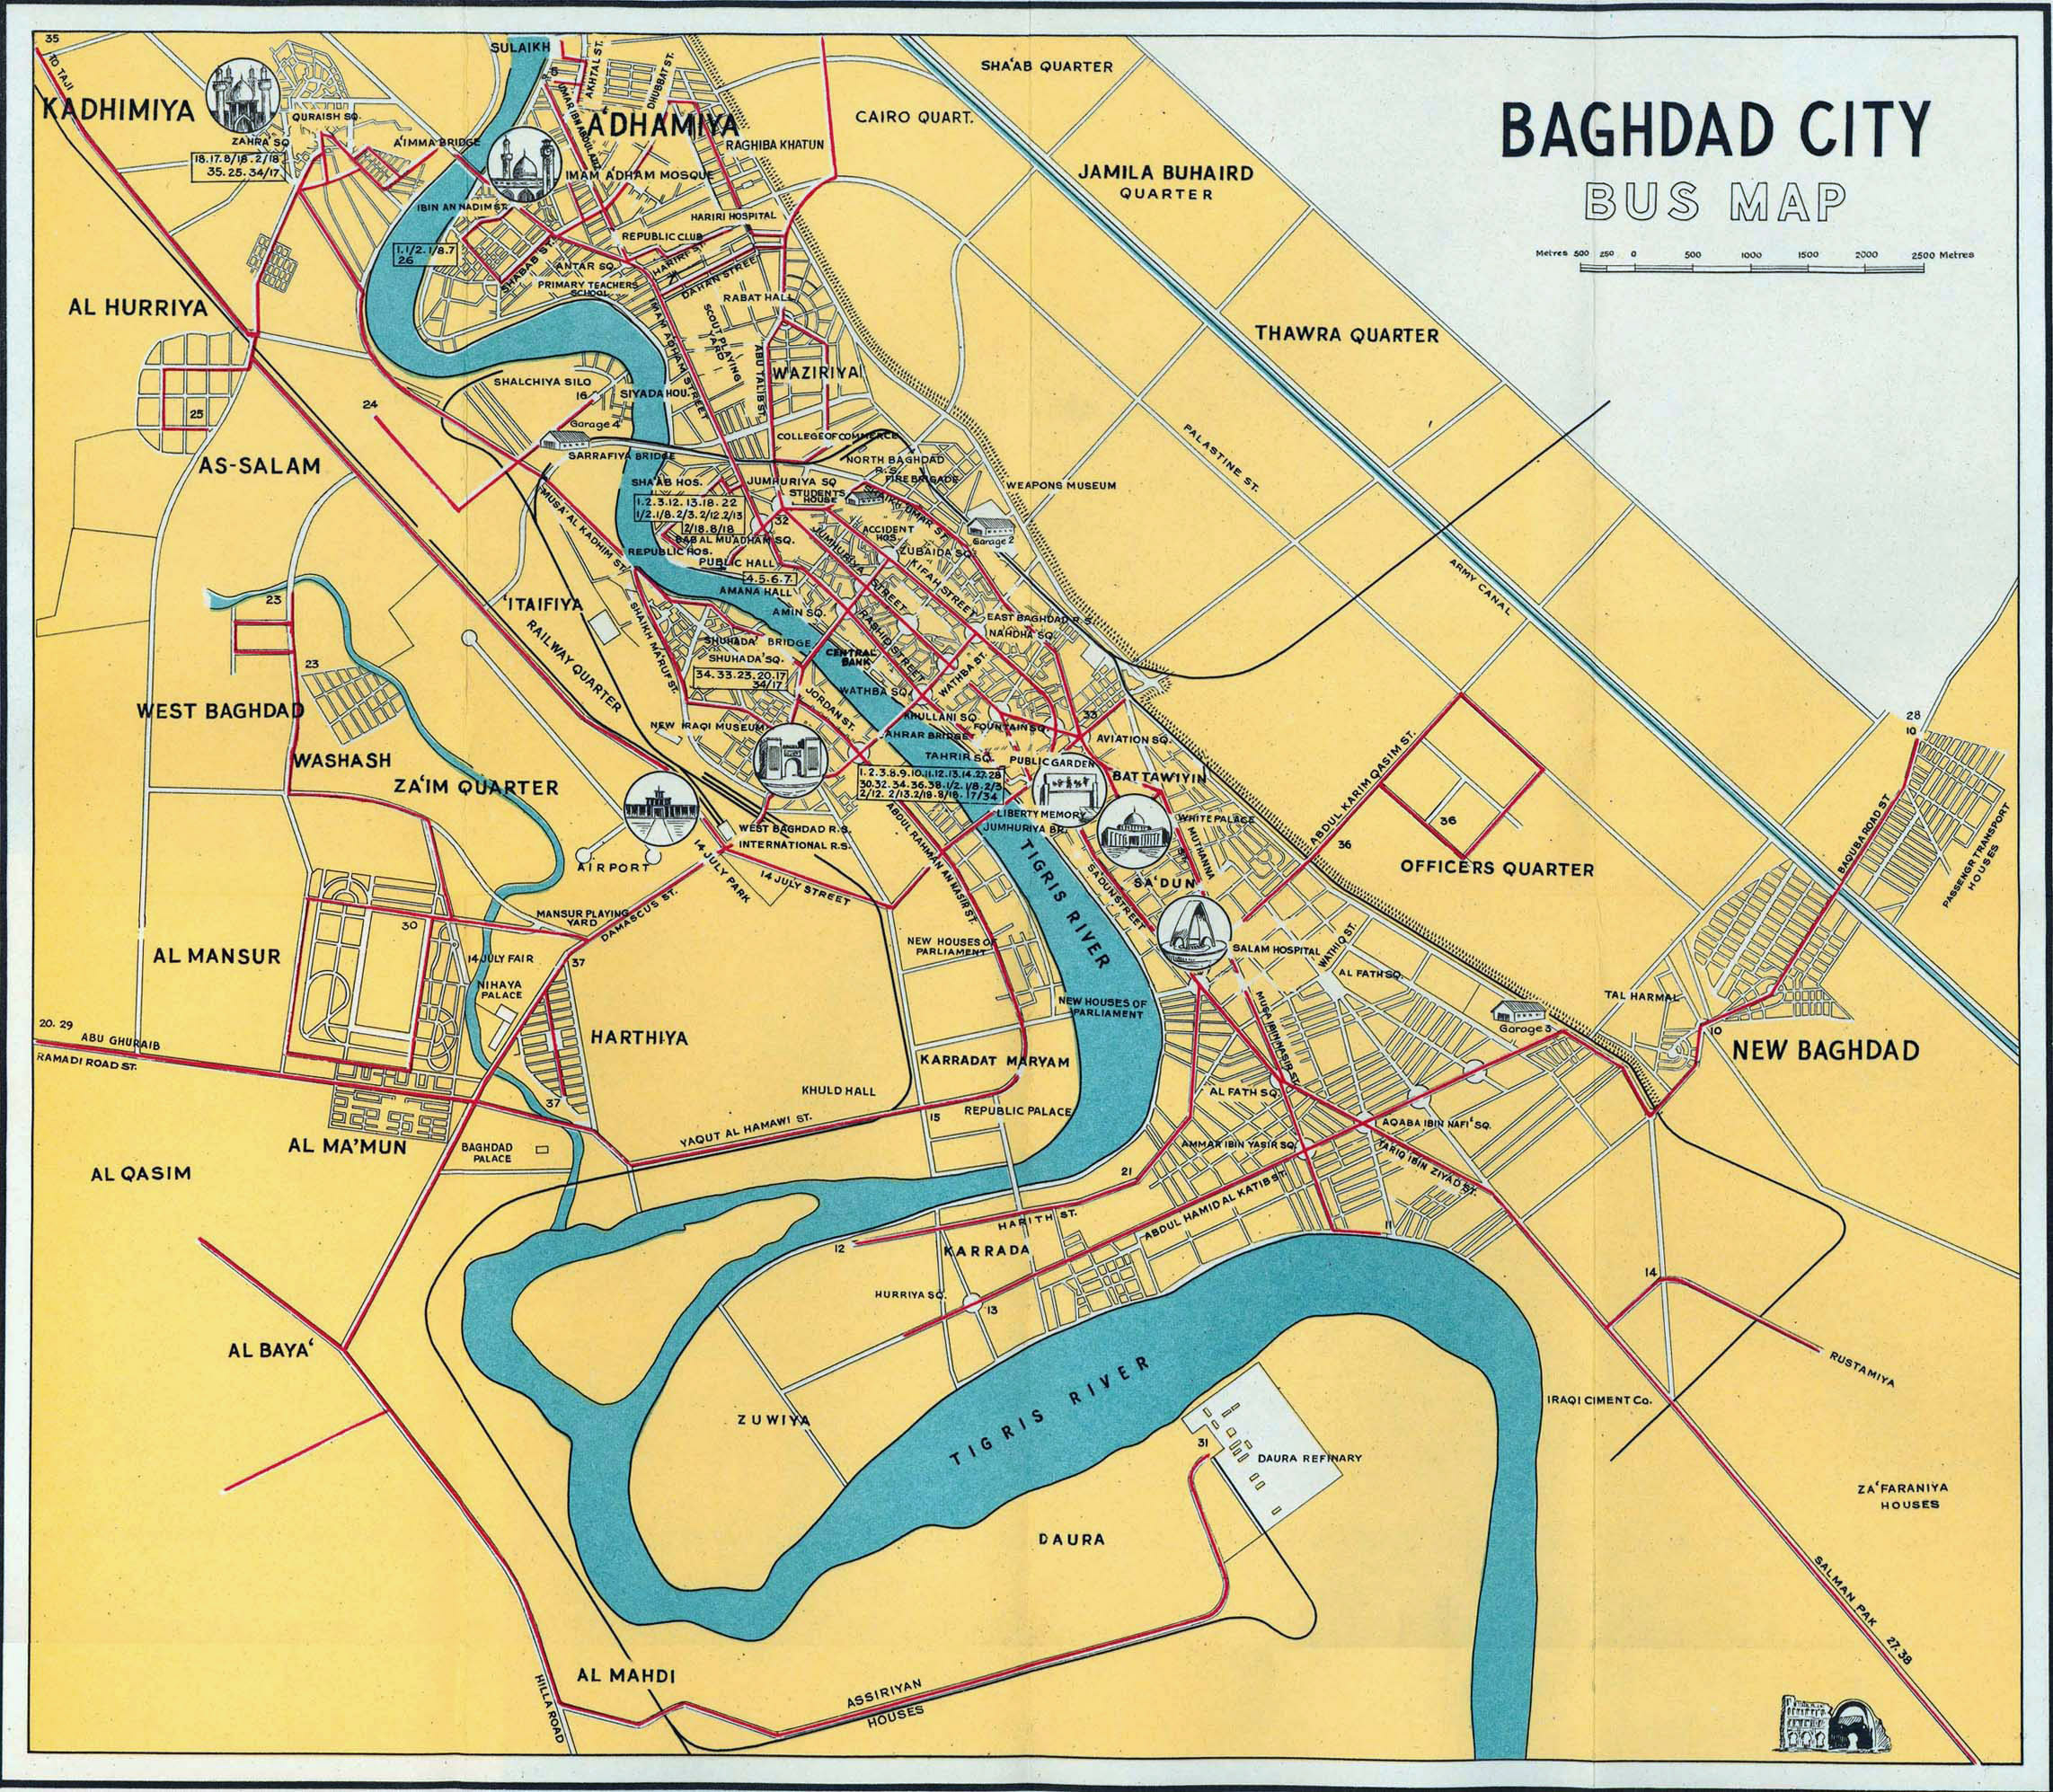 Large bus map of Baghdad city - 1961 | Baghdad | Iraq | Asia ...